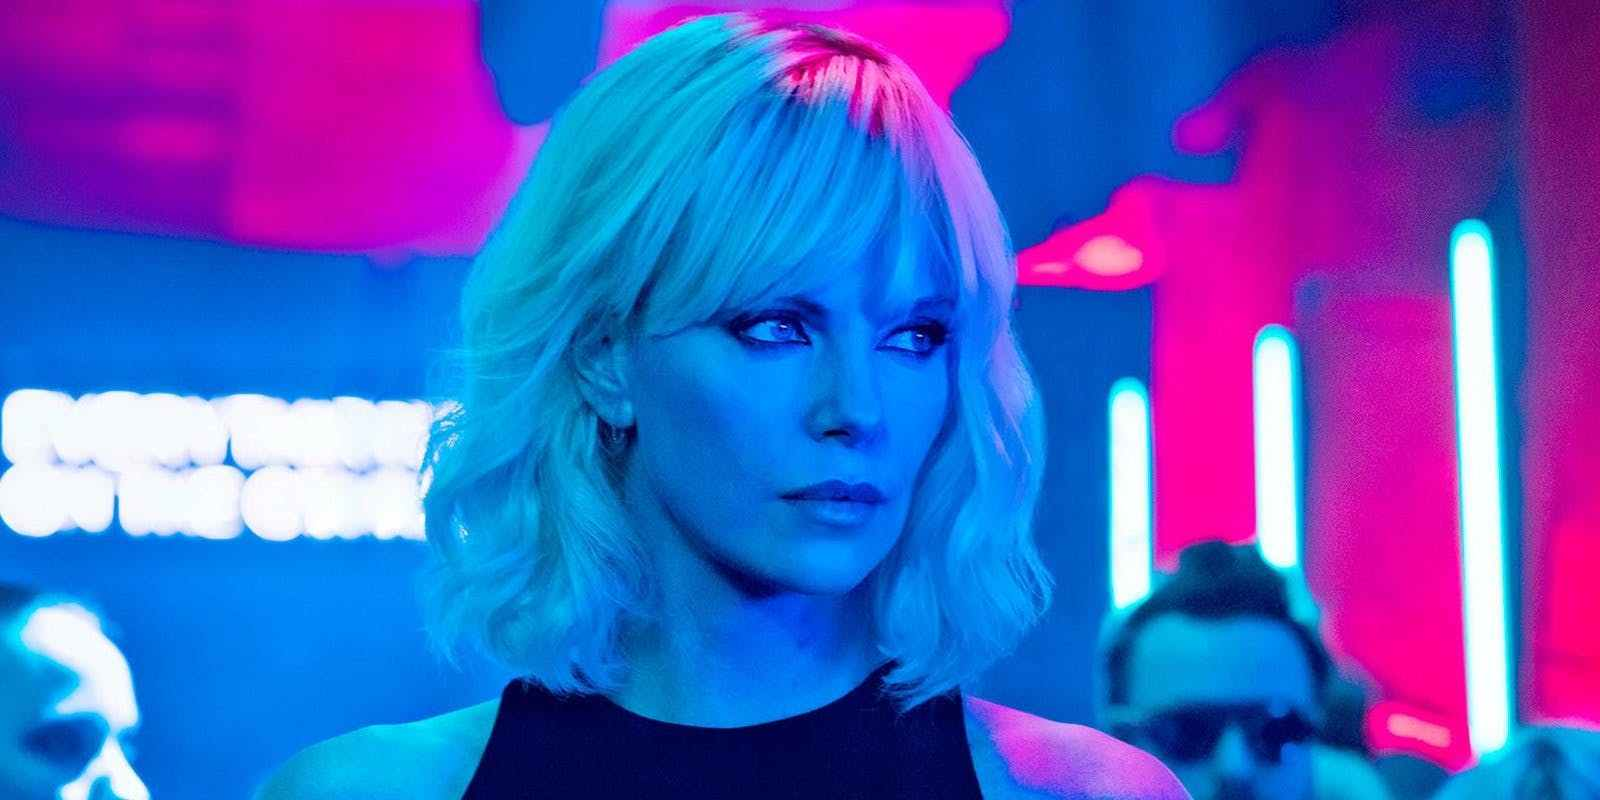 Charlize-Theron-as-Lorraine-in-Atomic-Blonde1 Atomic Blonde